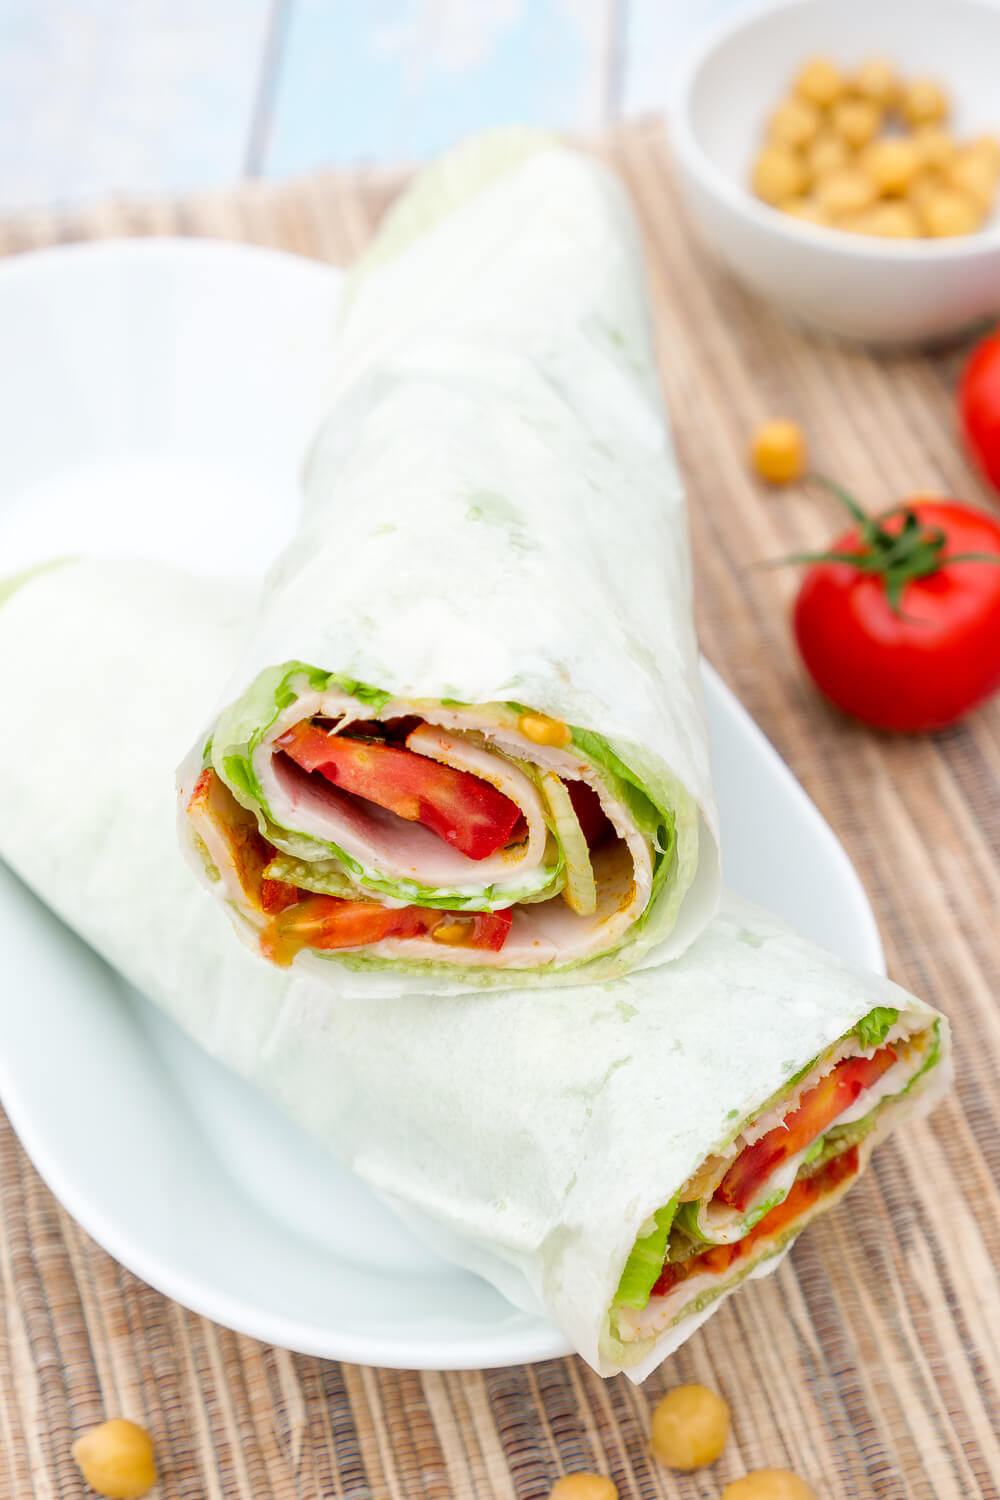 Salat-Wrap sind gesundes Low Carb Fingerfood ohne Tortillas